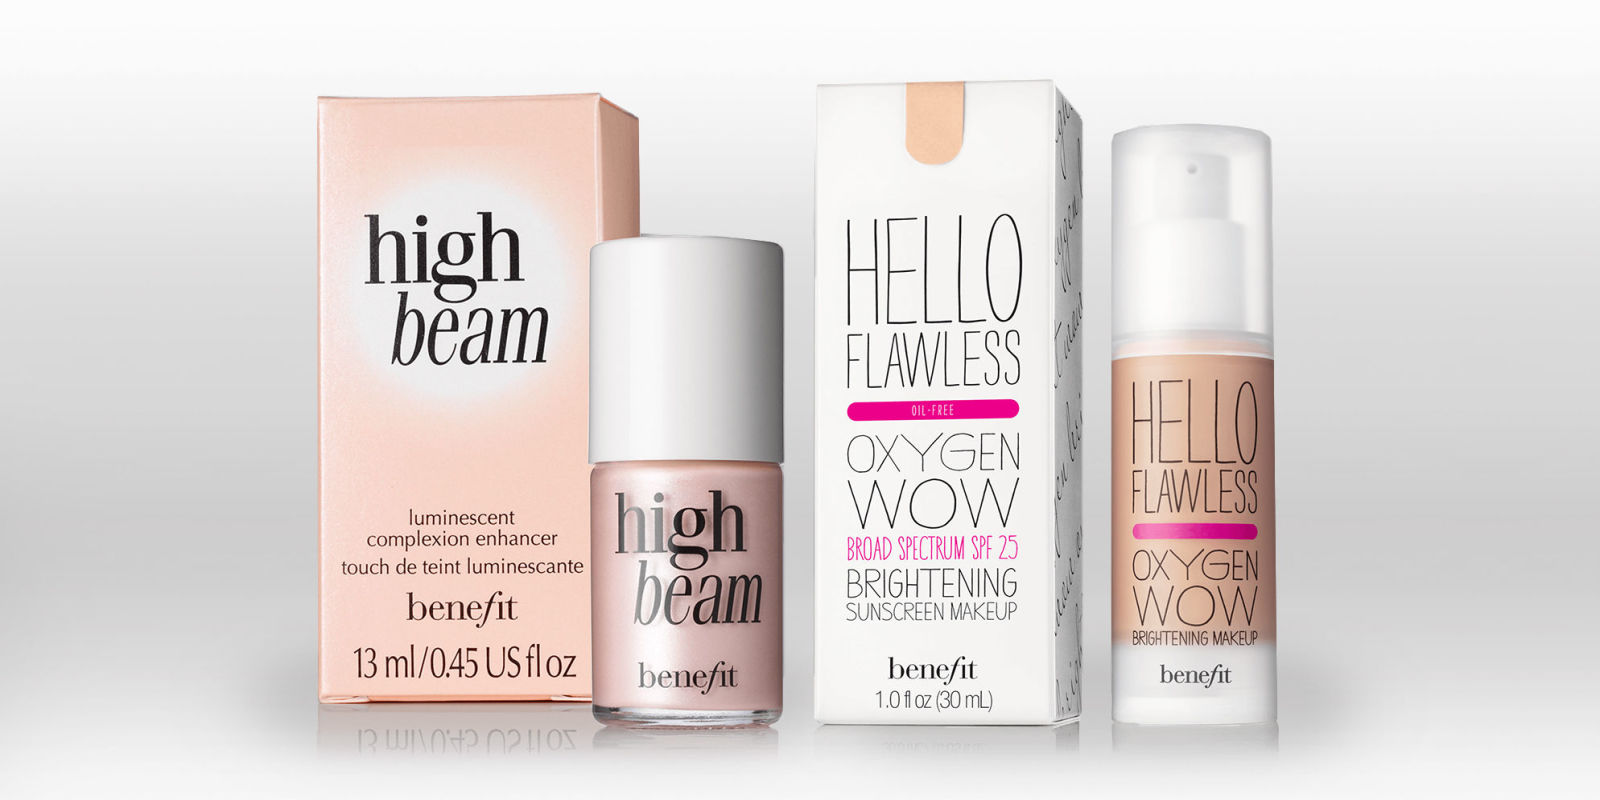 Prep, prime & perfect to put your best face forward! Visit the official Benefit site for your instant beauty solutions.